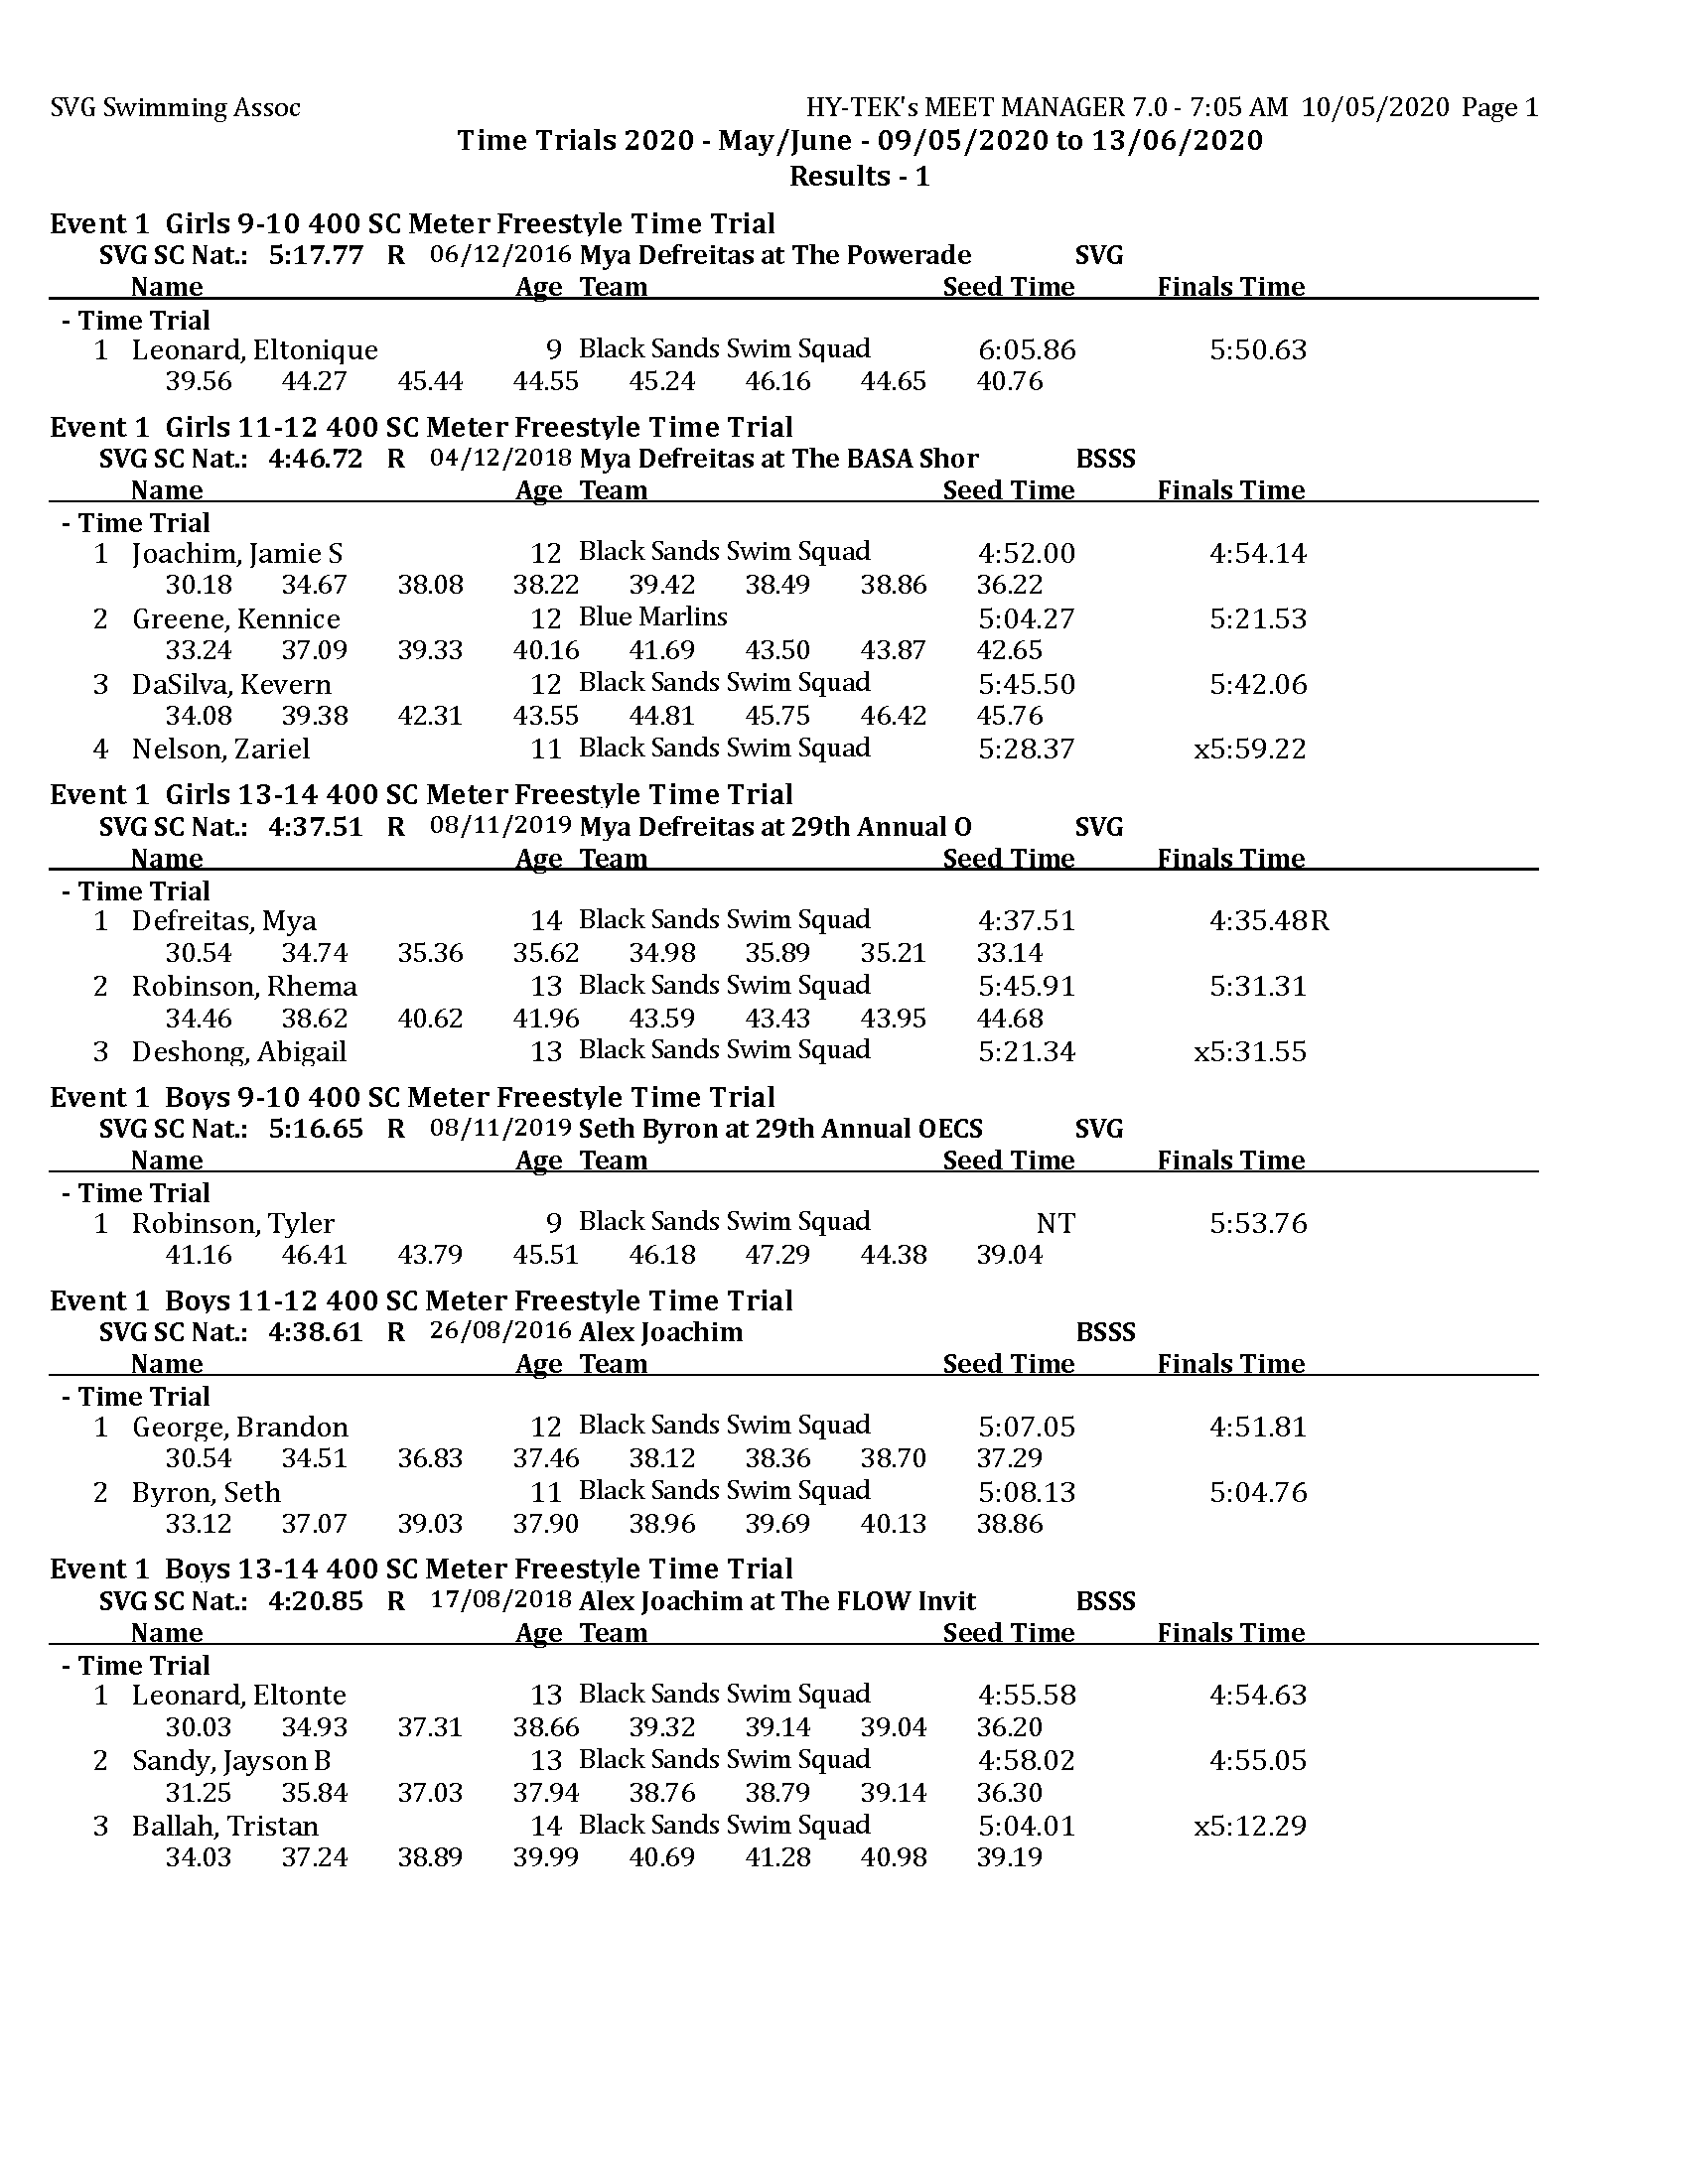 TT 2020 - May - Results day 1 MM_Page_1